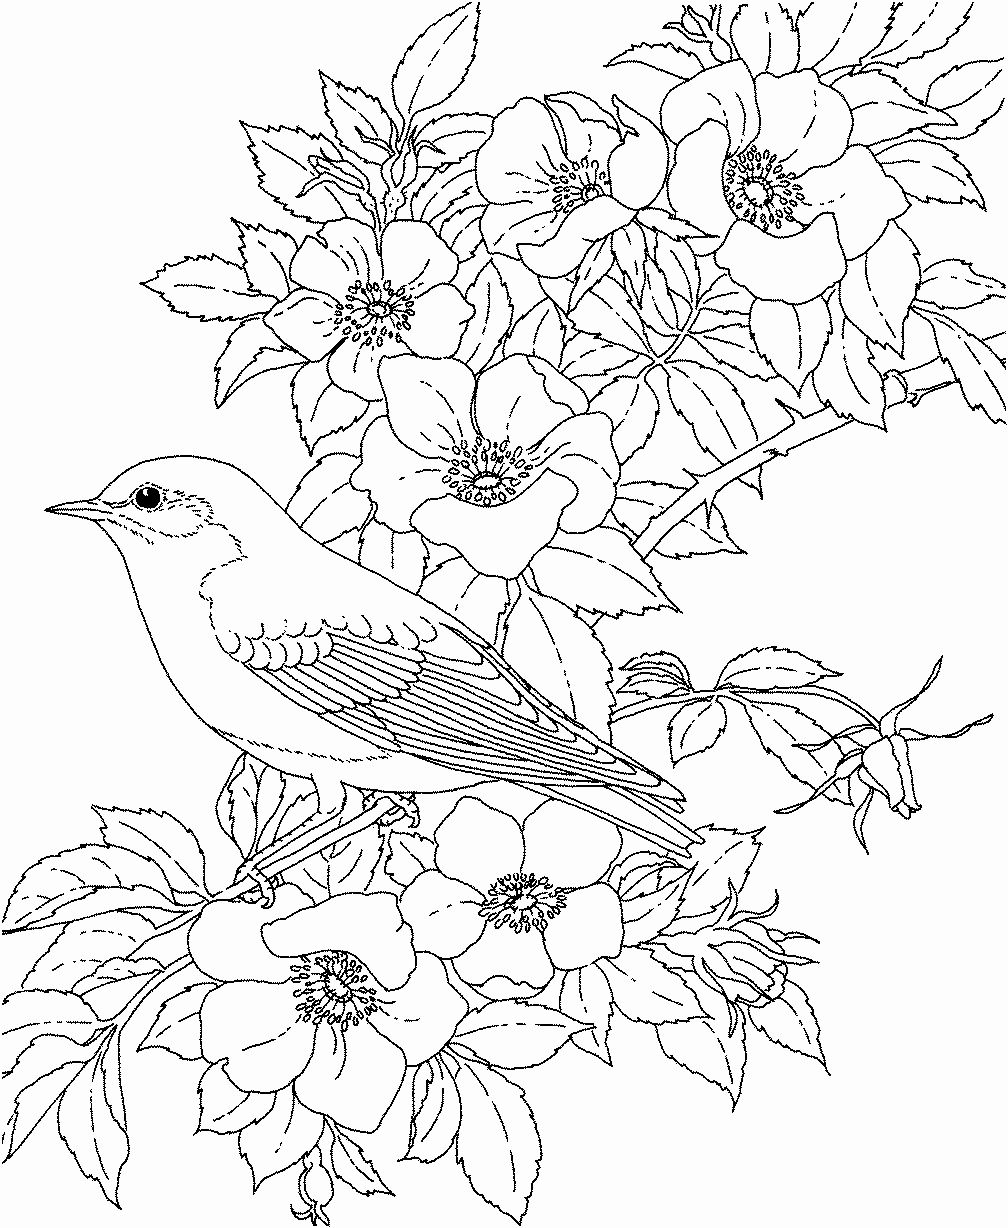 Coloring Pages Animals Hard Lovely Birds Coloring Pages For Adults In 2020 Animal Coloring Pages Bird Coloring Pages Flower Coloring Pages